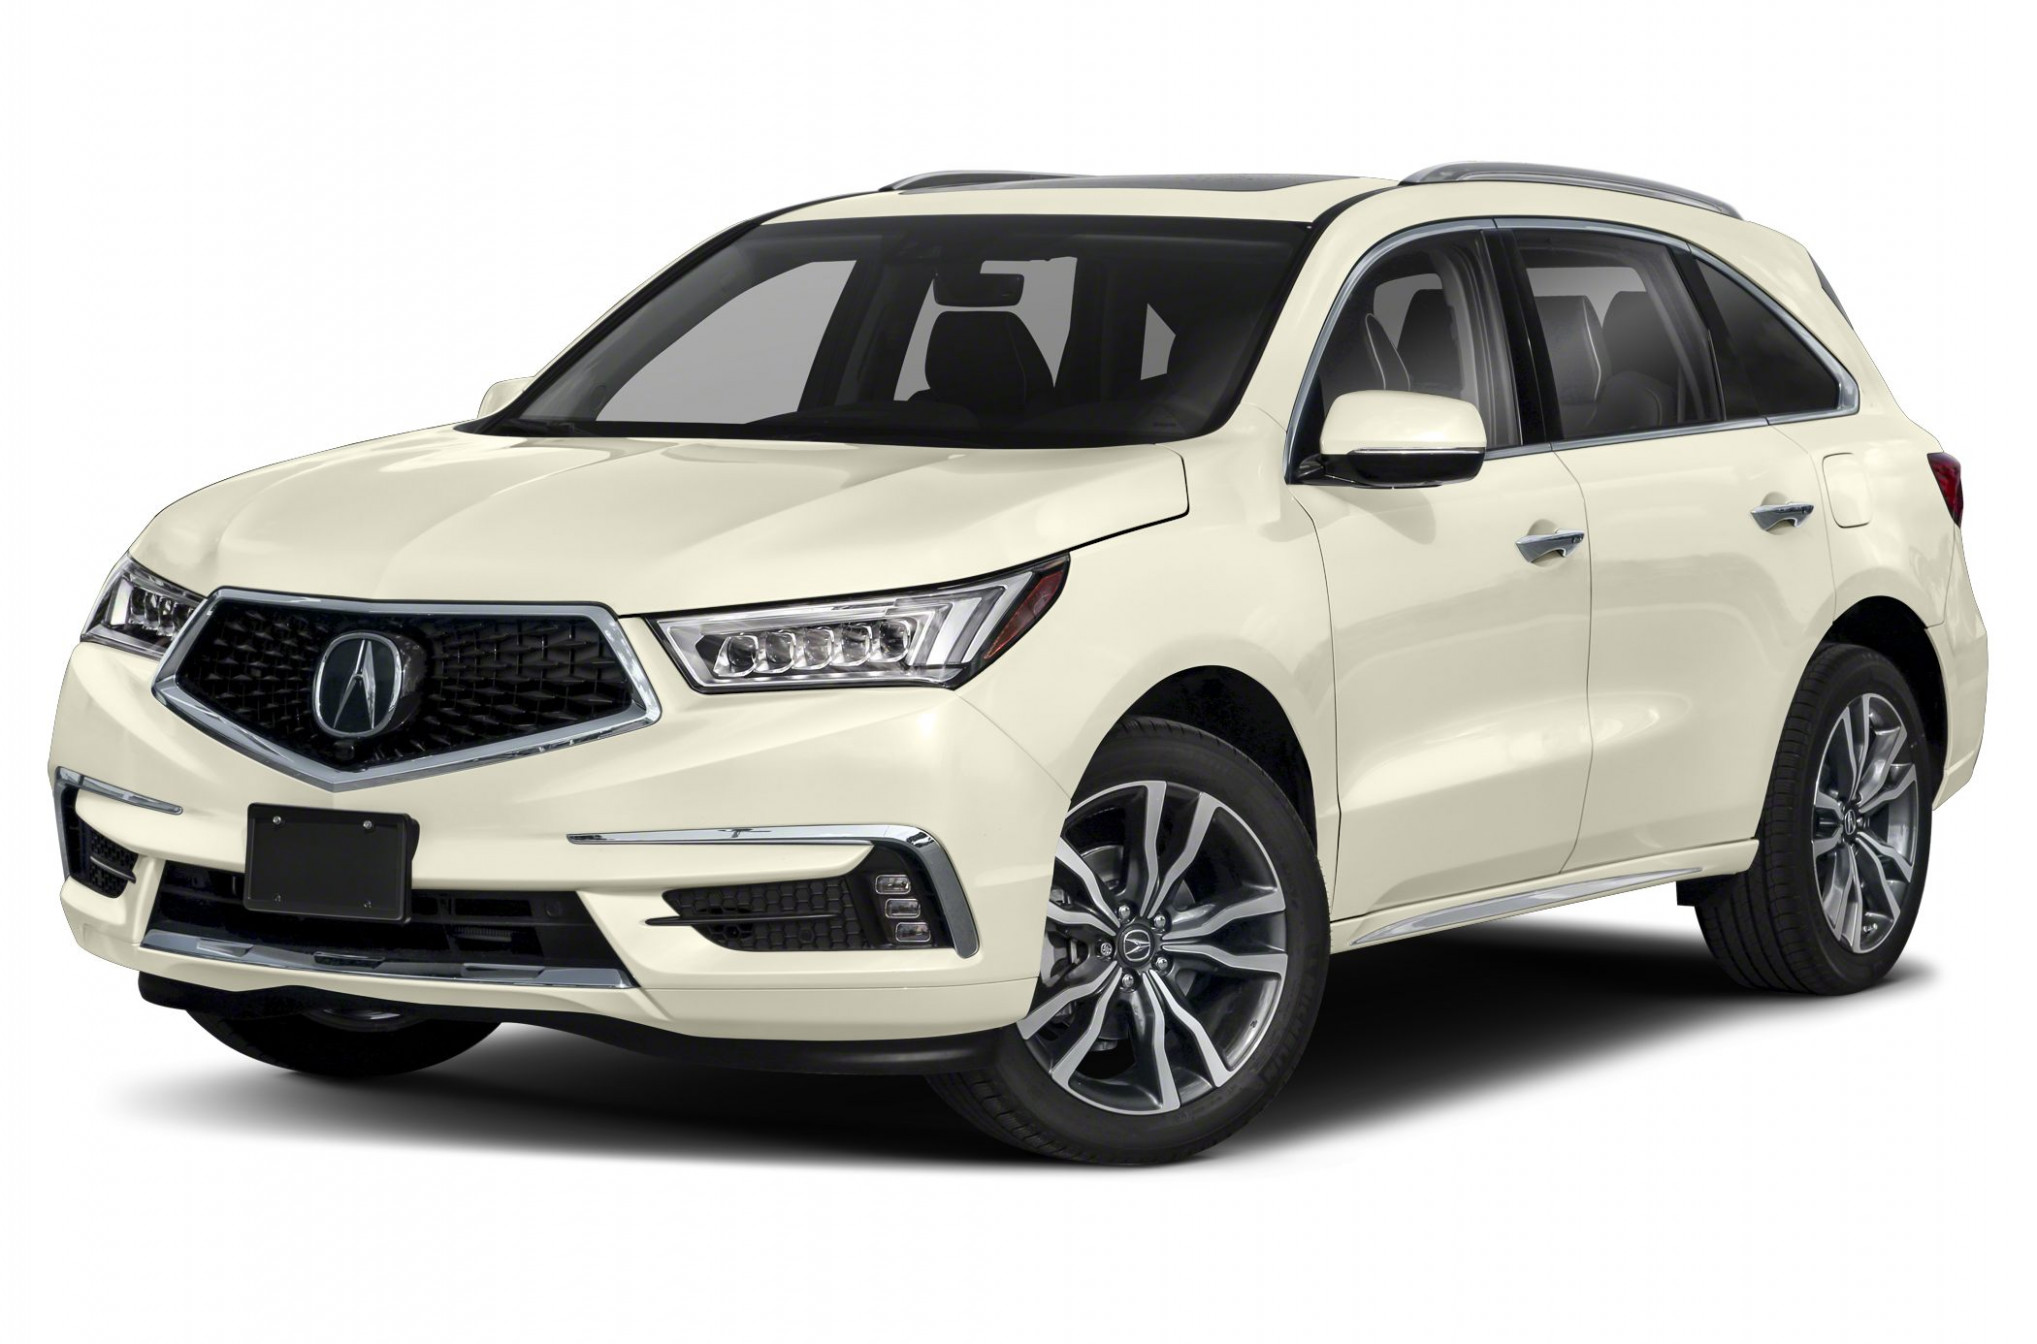 6 Acura MDX Advance Package 6dr Front-wheel Drive for Sale - 2020 acura mdx for sale